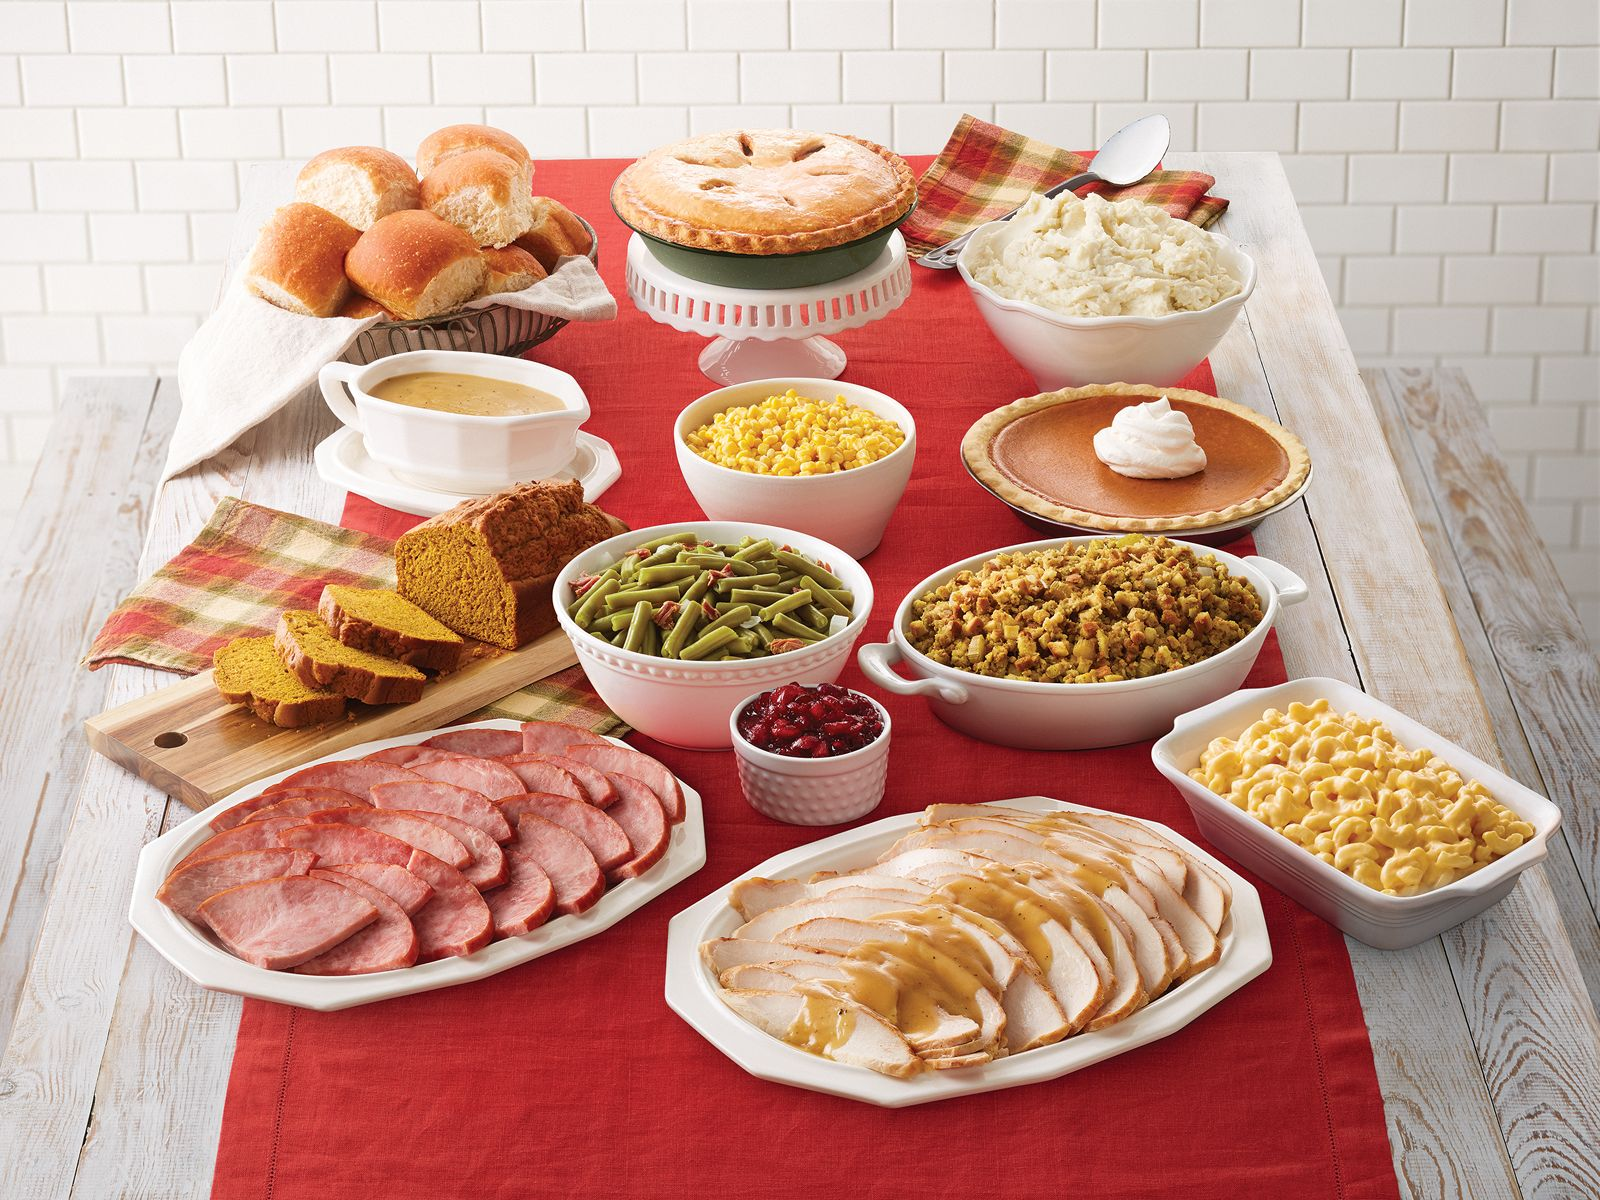 Bob Evans Restaurants Serves Up Value With Thanksgiving 'Farmhouse Feast' To-Go